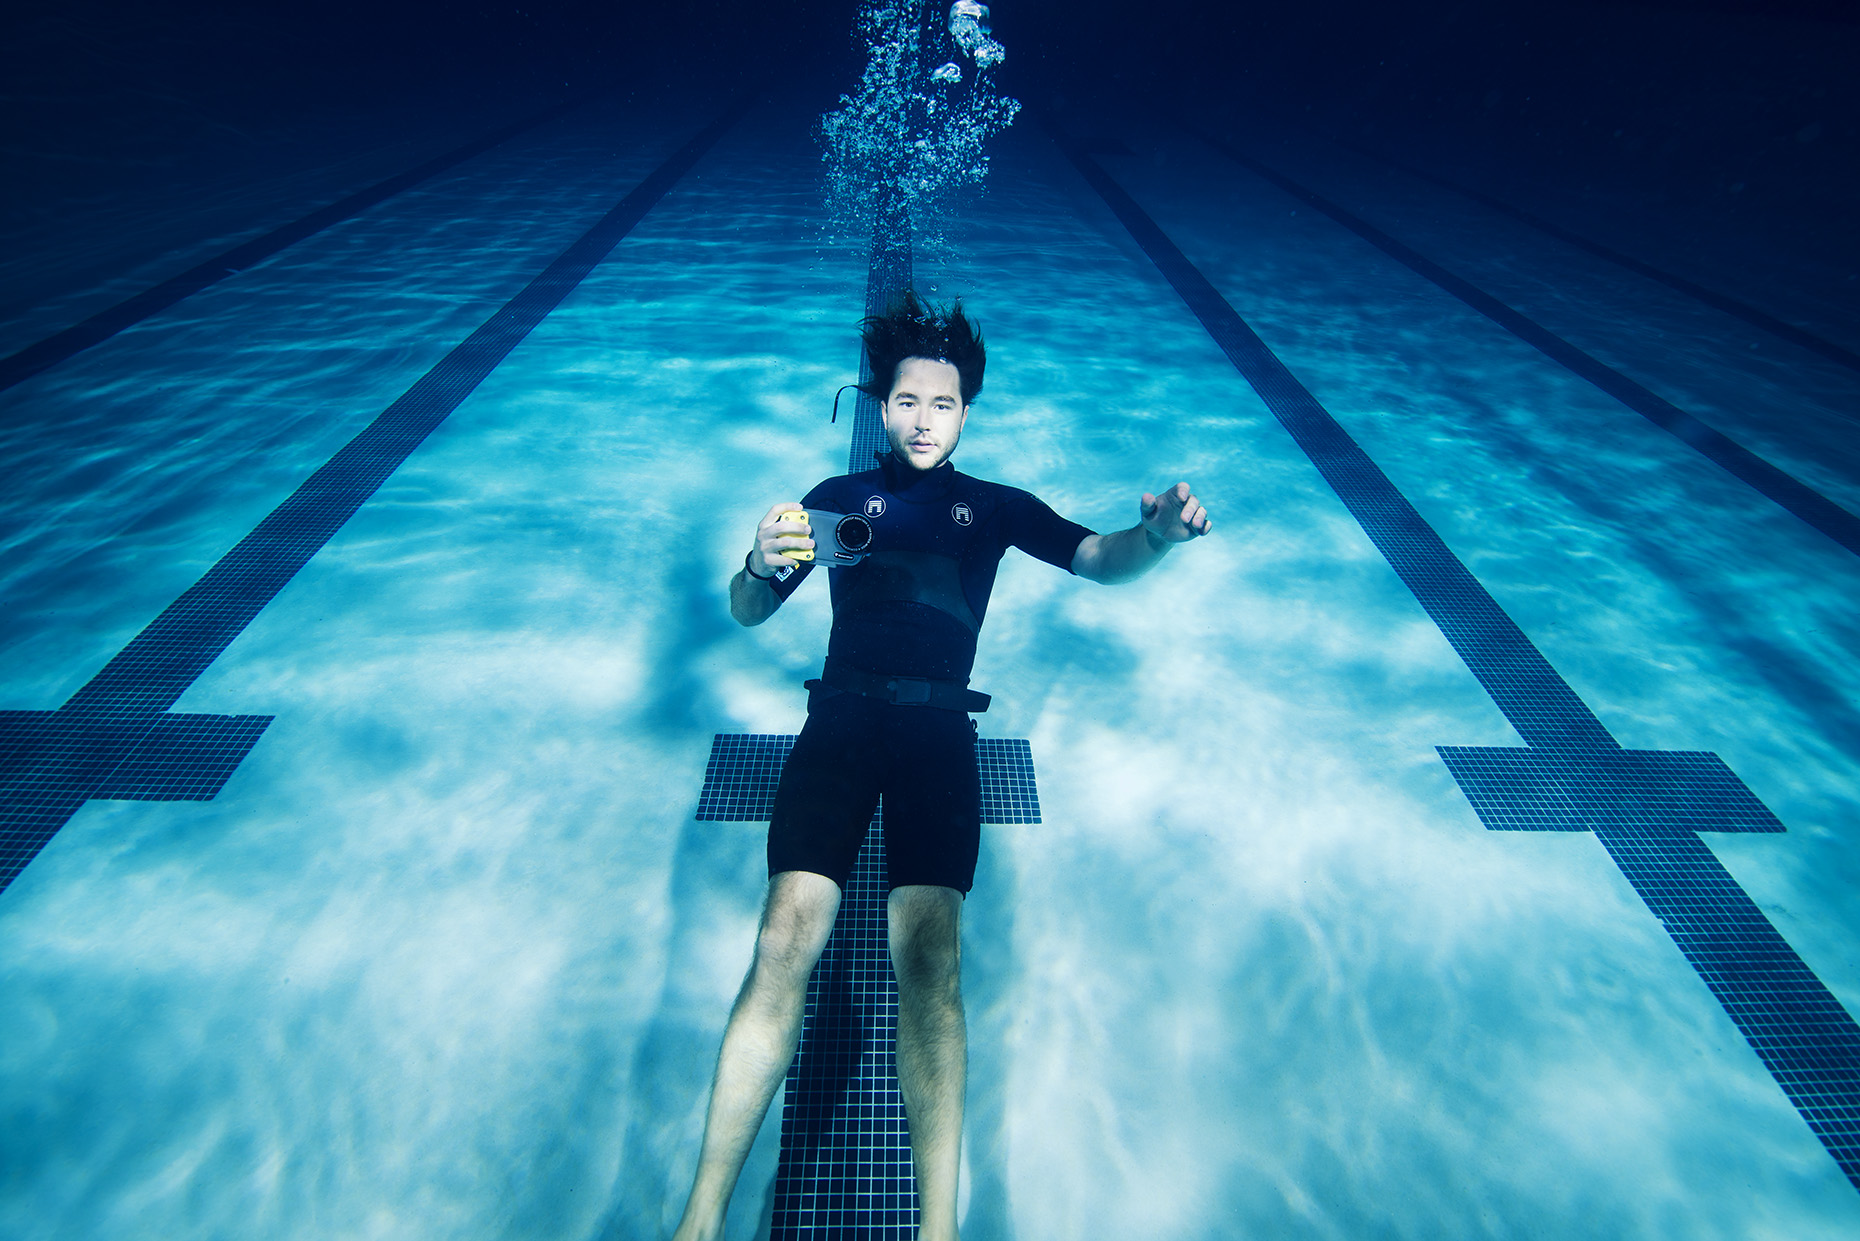 New York Underwater Portrait Lifestyle